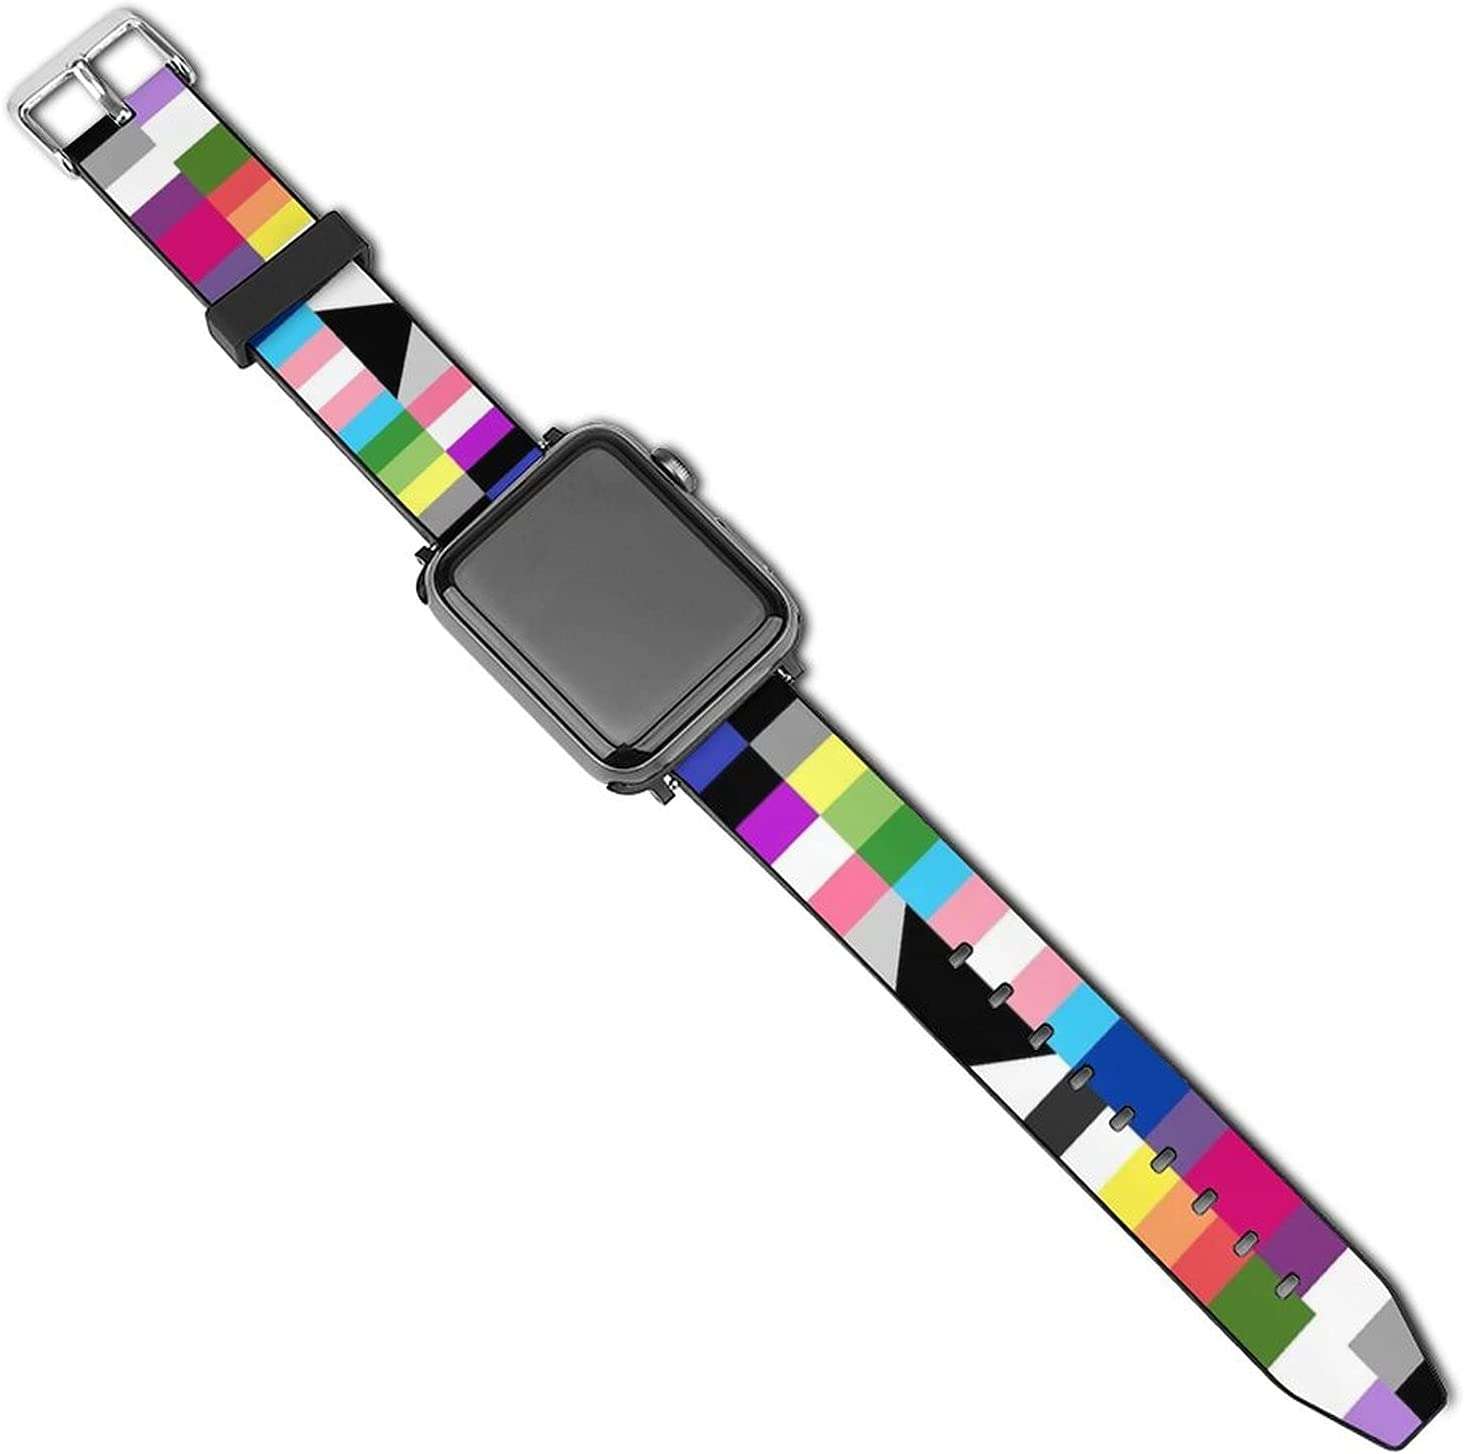 NiYoung Lesbian Gay LGBT Pride Flags Leather Band for Apple Watch Bands 38mm 40mm 42mm 44mm Watch Strap Replacement Wrist Band for iWatch Series 5 4 3 2 1